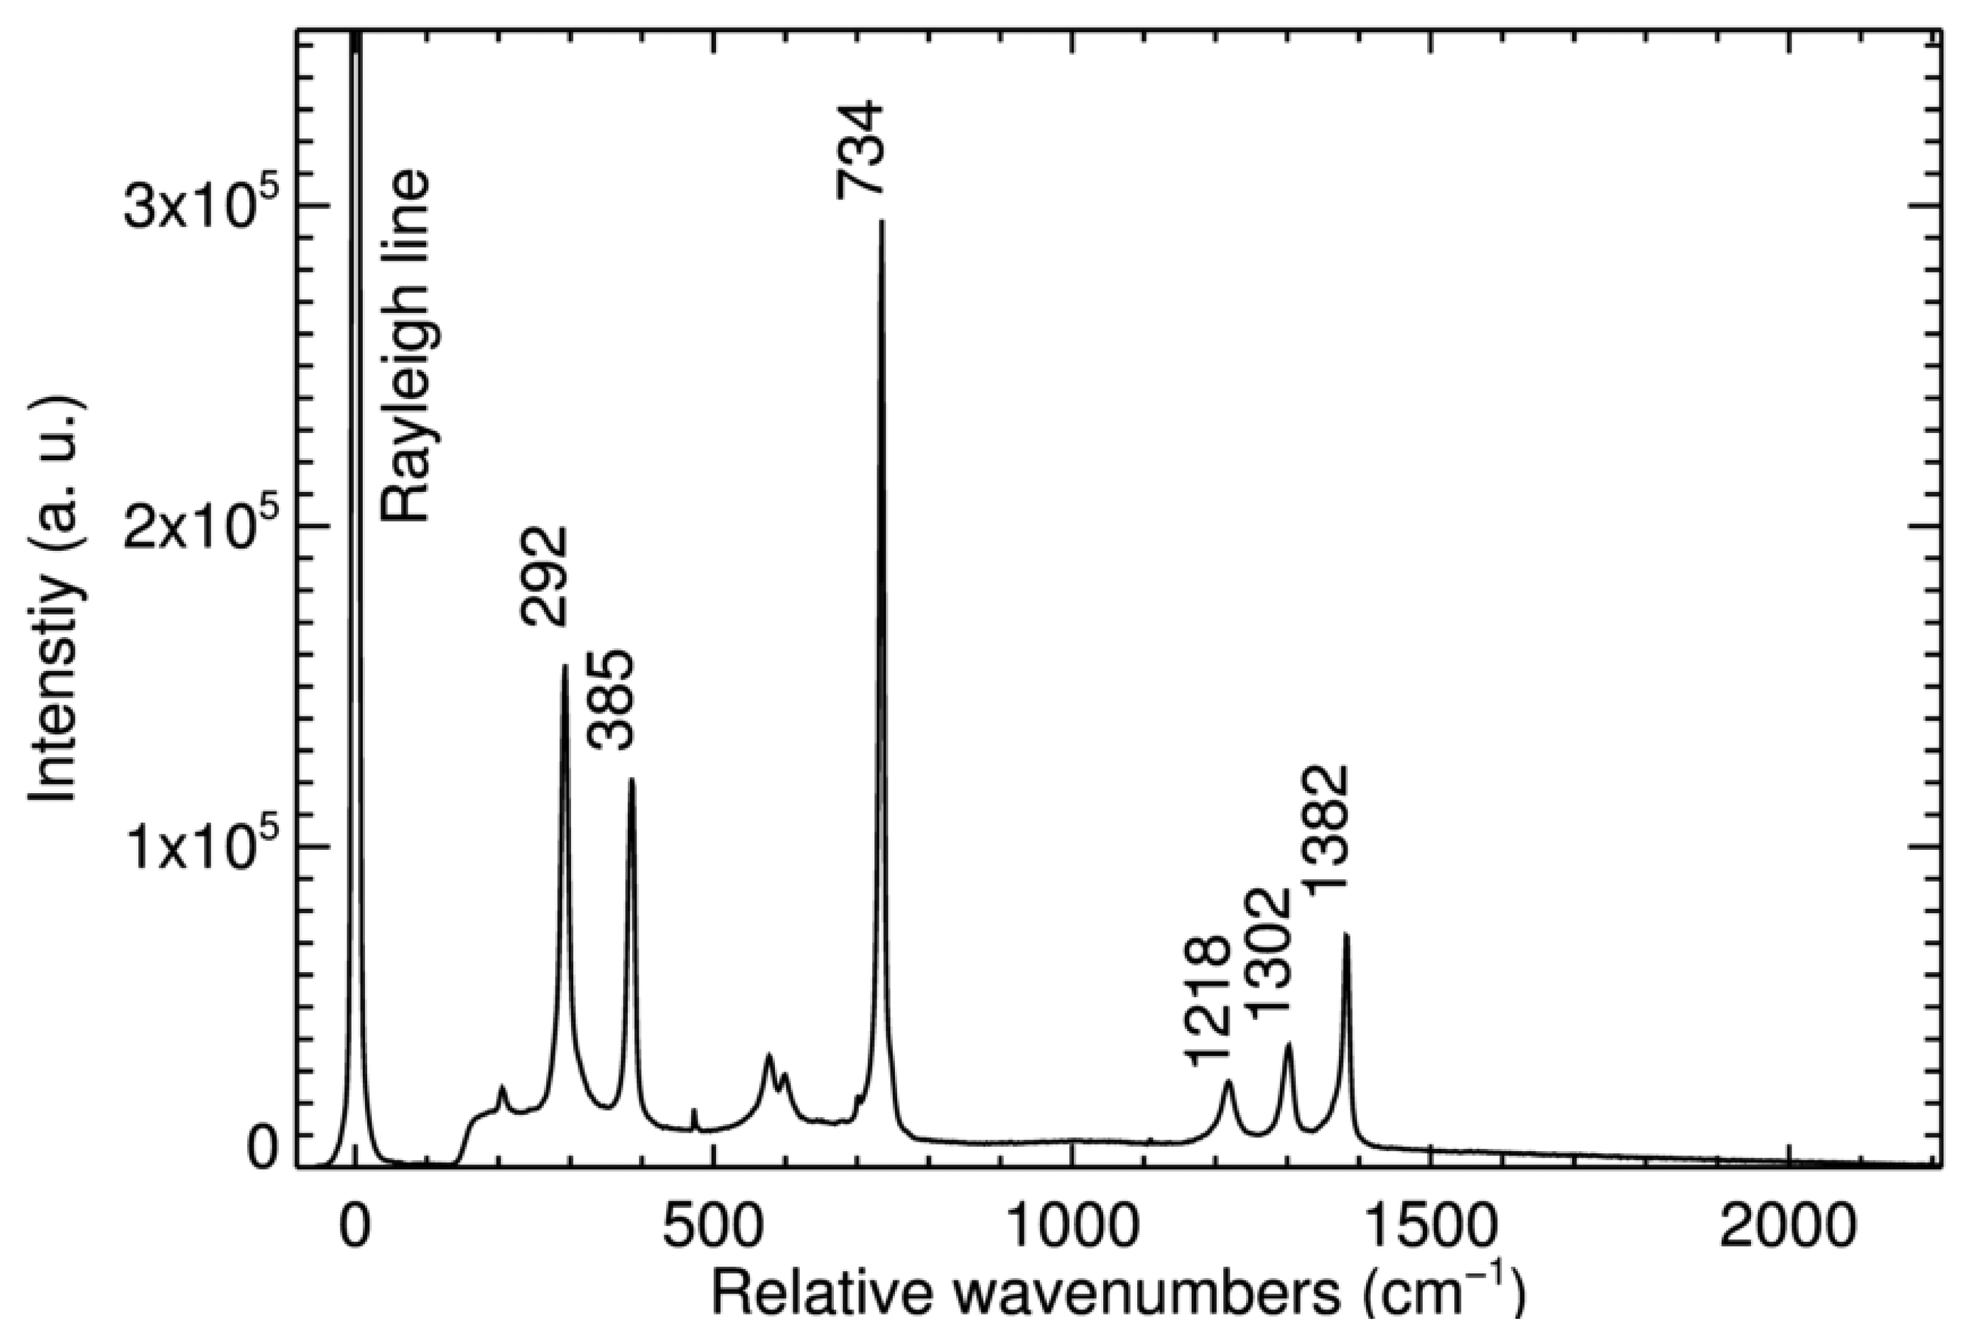 Htm together with Double Beam Uv Vis Spectrophotometer Schematic furthermore 51622674 Schematic Diagram Of The Experimental Arrangement For Raman Spectra Measurements In Plate besides Flame Photometer Diagram furthermore A910219L. on raman spectroscopy schematic